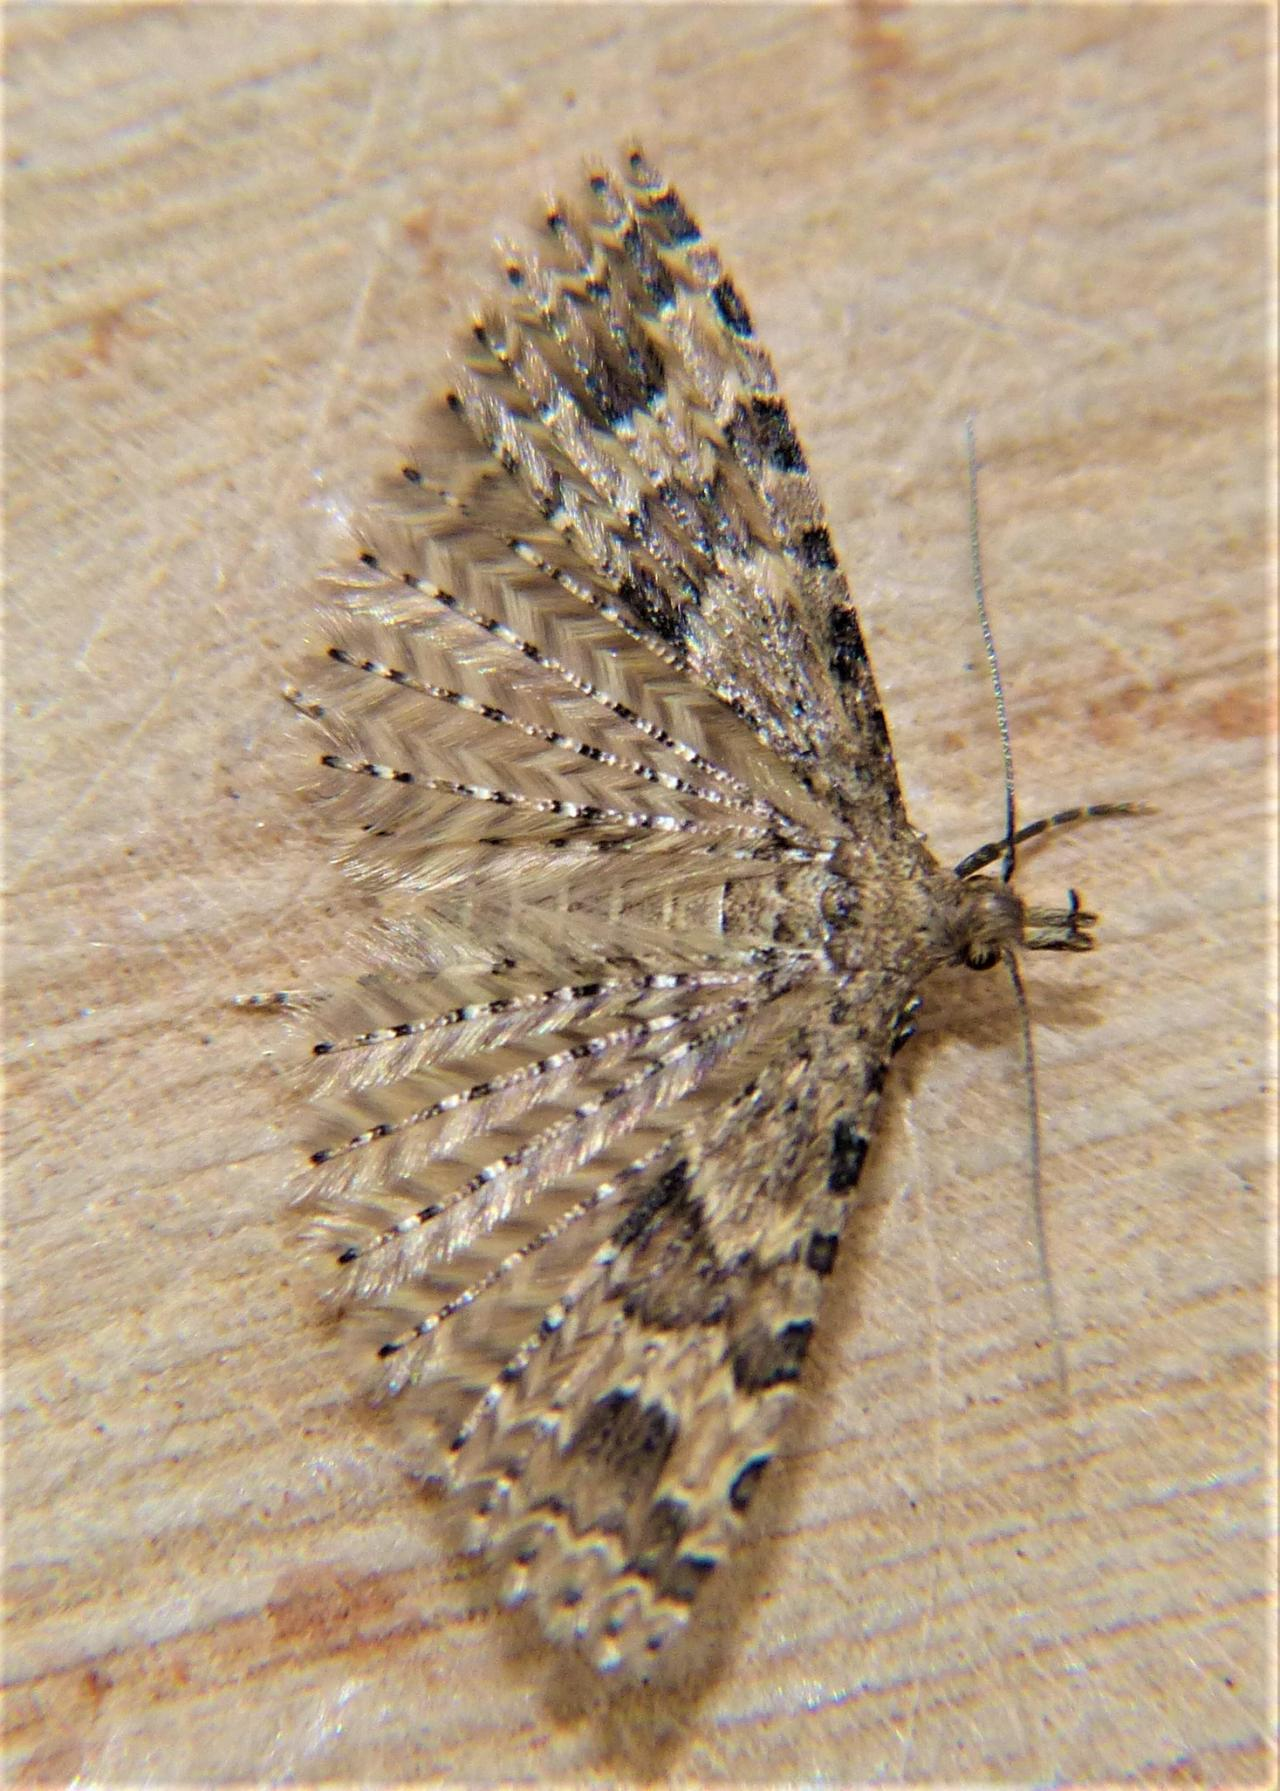 Yponomeuta Padella Lepiforum Alucita Hexadactyla Many Plume Moth Norfolk Micro Moths The